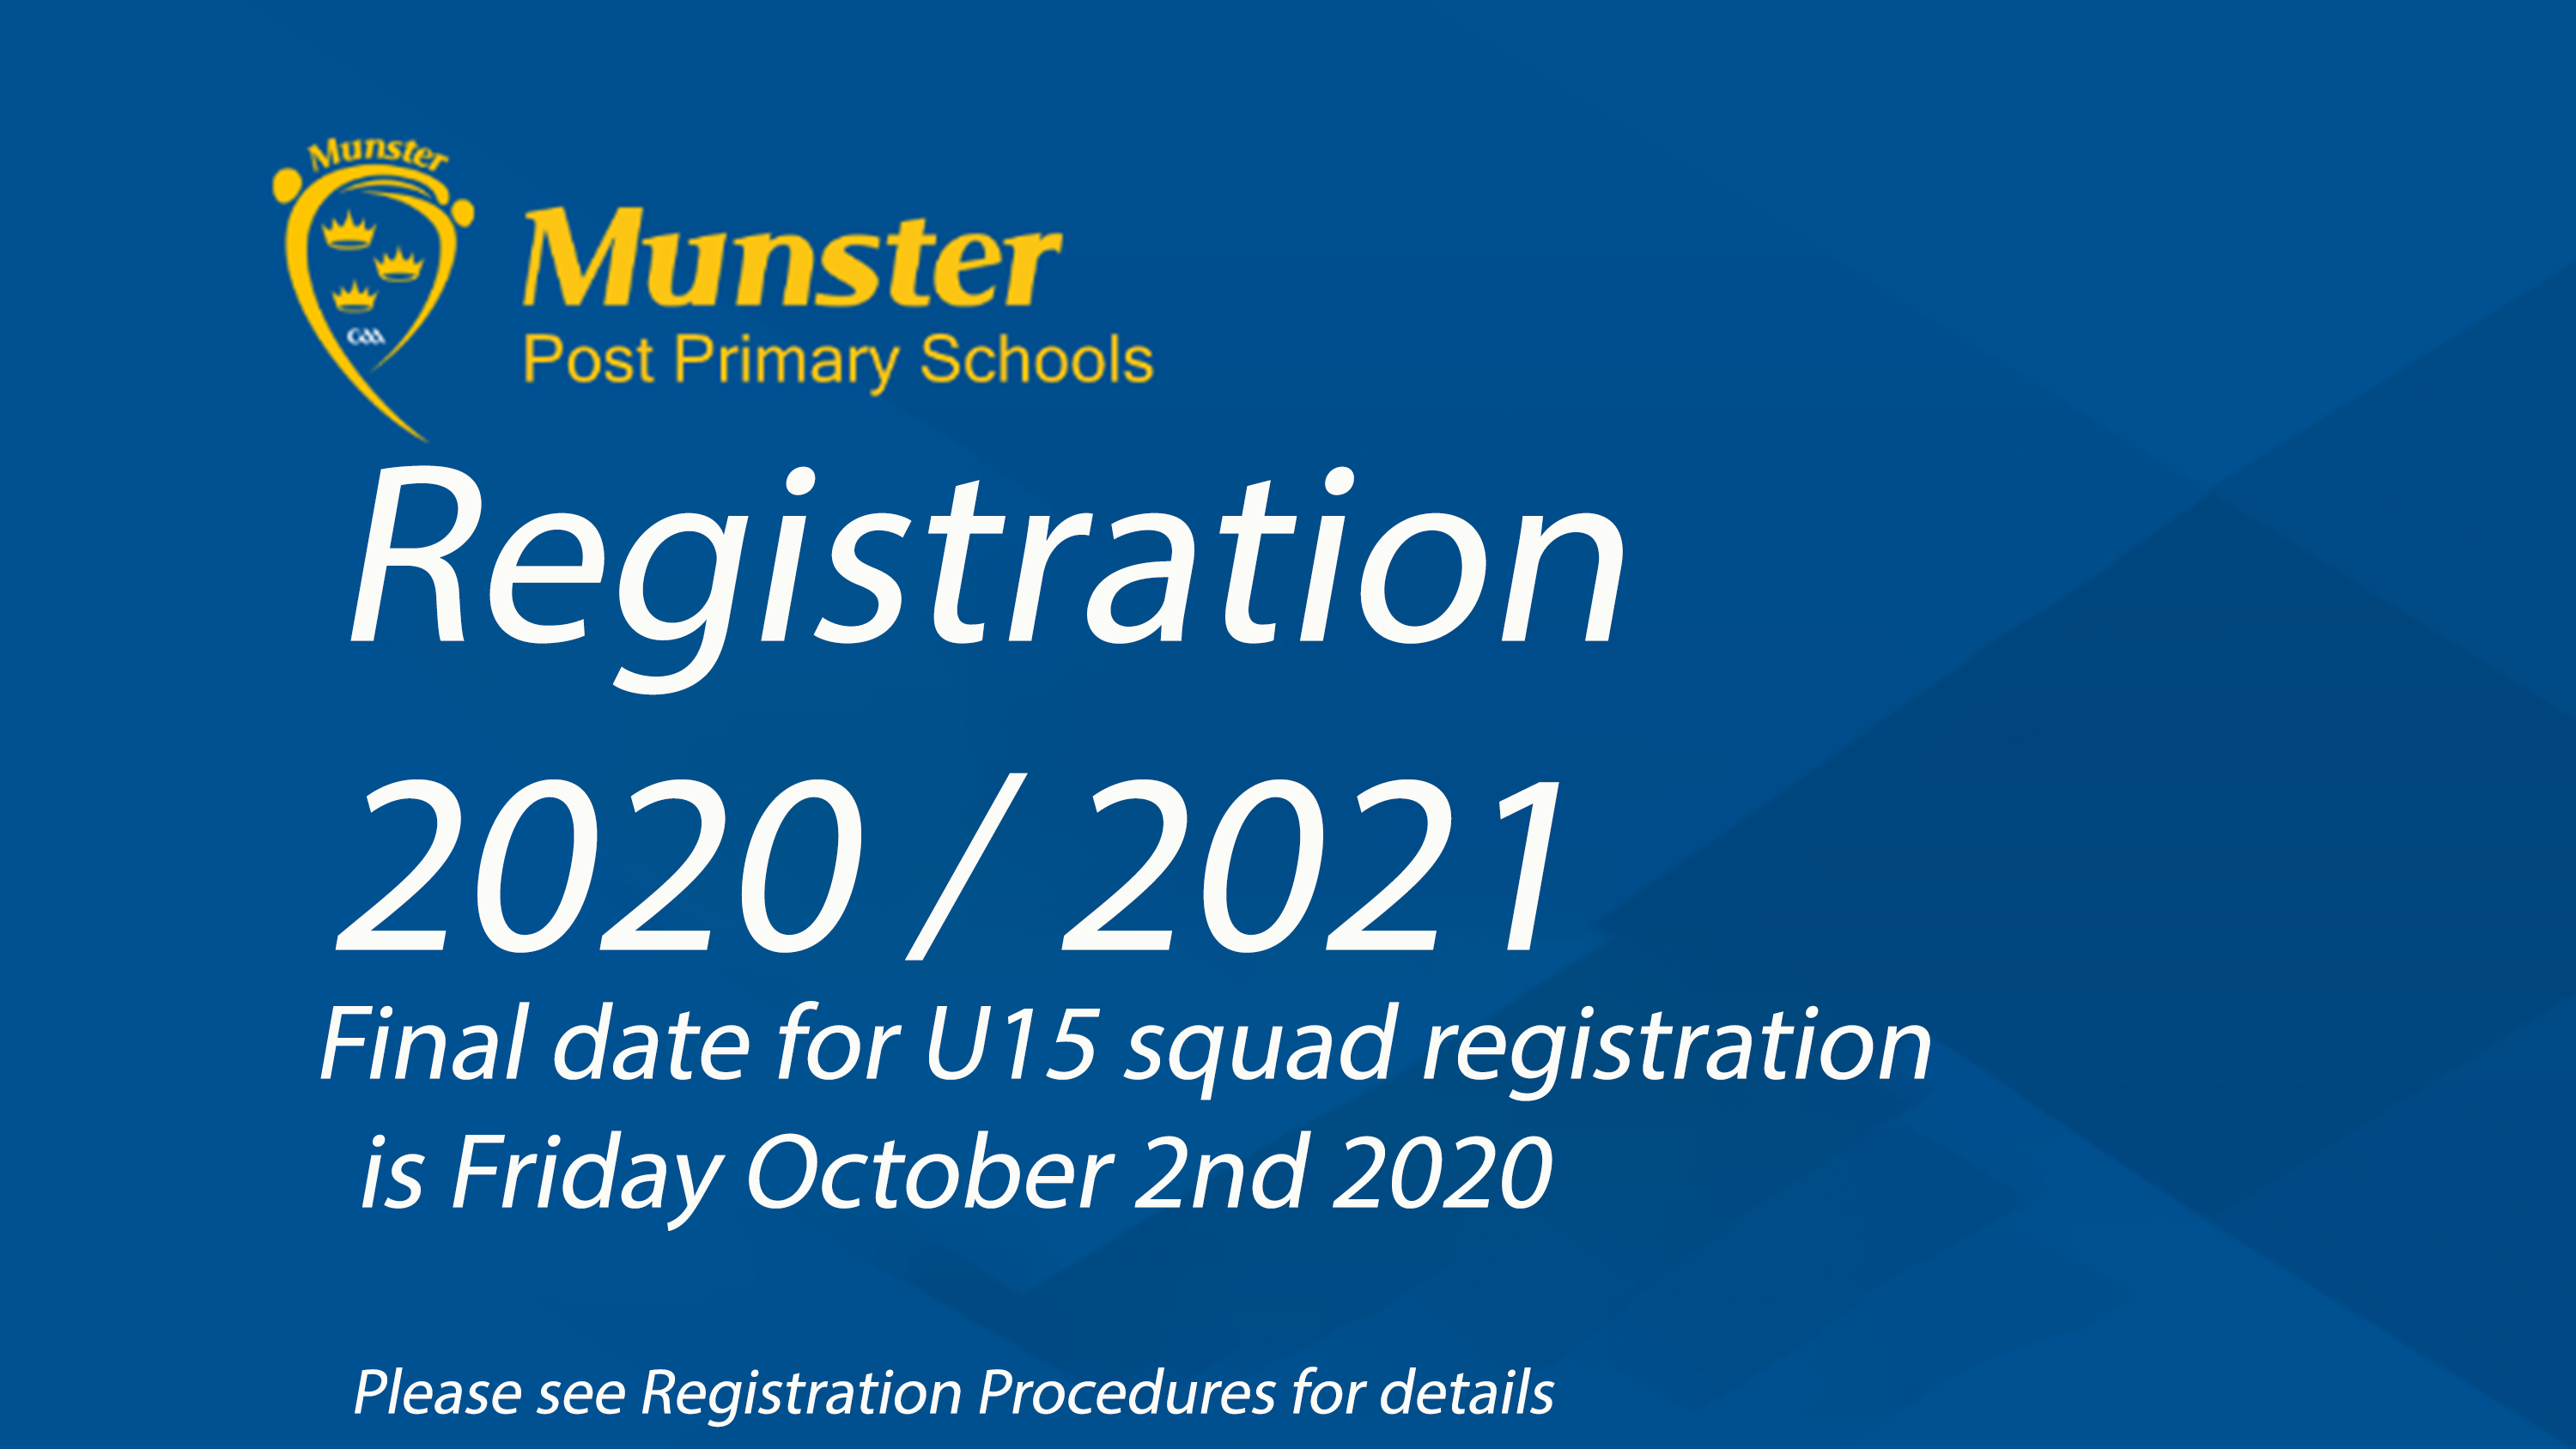 Registration now open for 2020 / 2021 Under 15 Hurling and Football